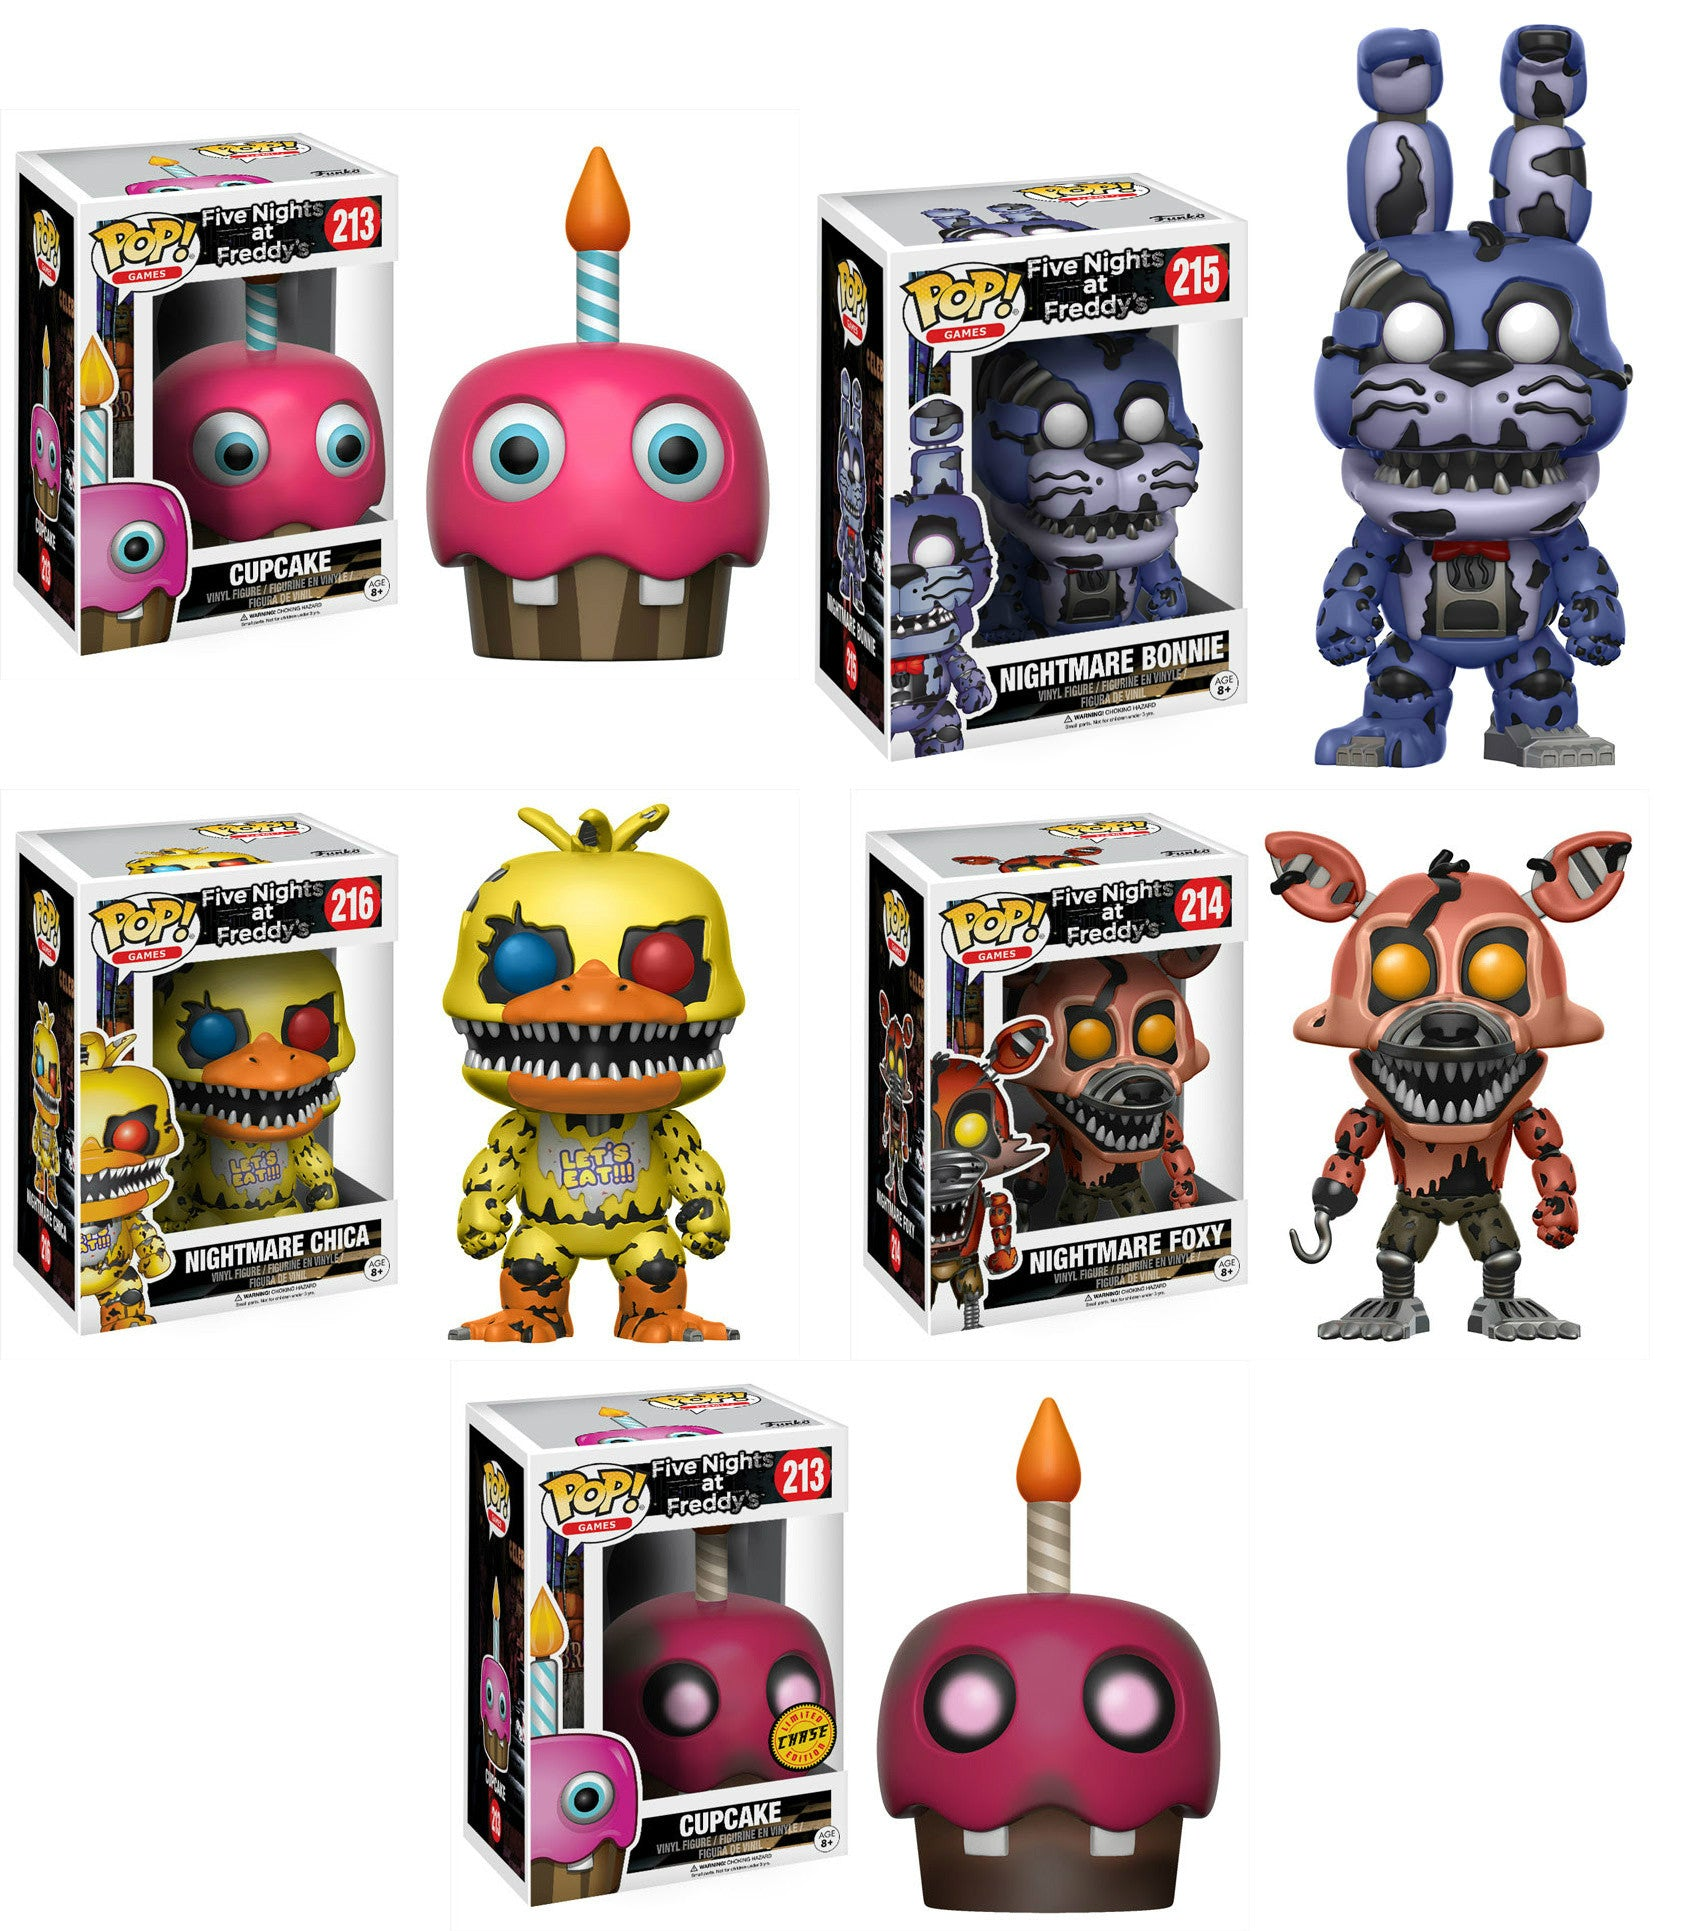 Funko Five Nights at Freddy/'s Nightmare Edition Collectible Vinyl Figure Set